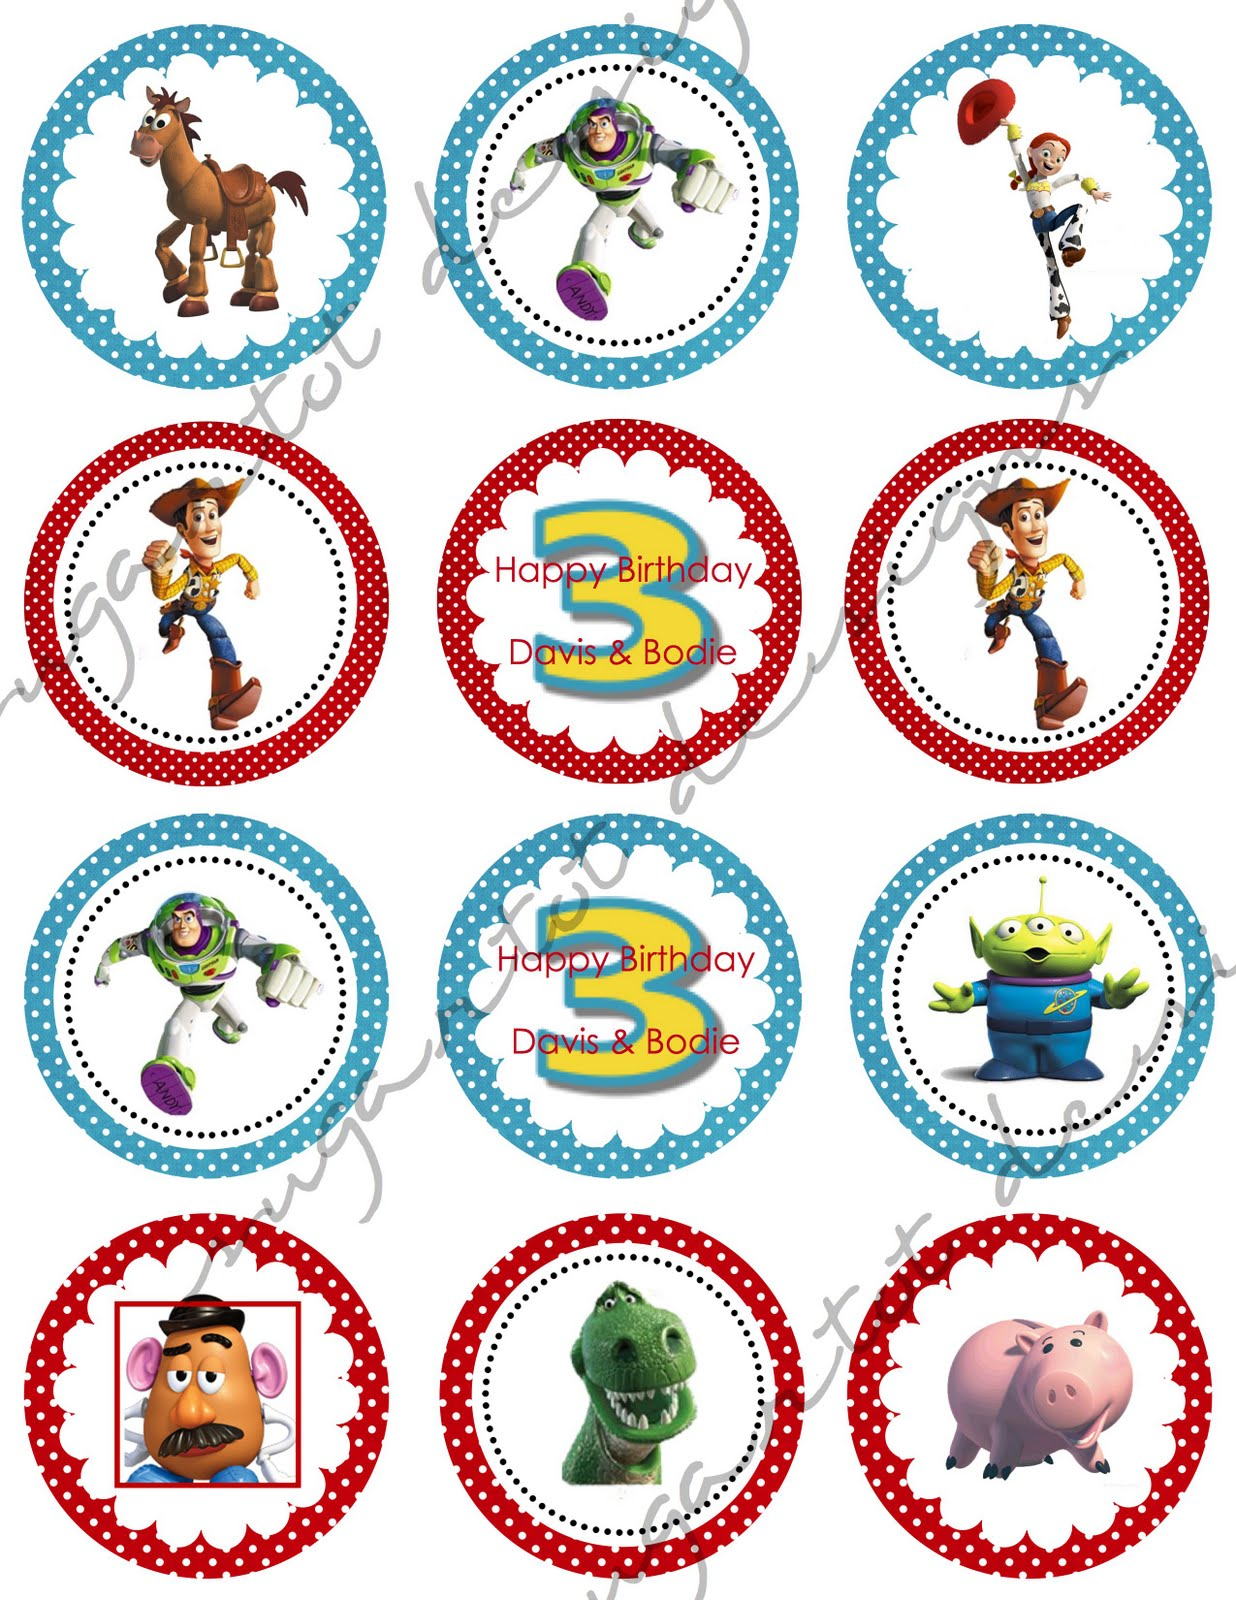 Ninja Birthday Invitations with great invitations example